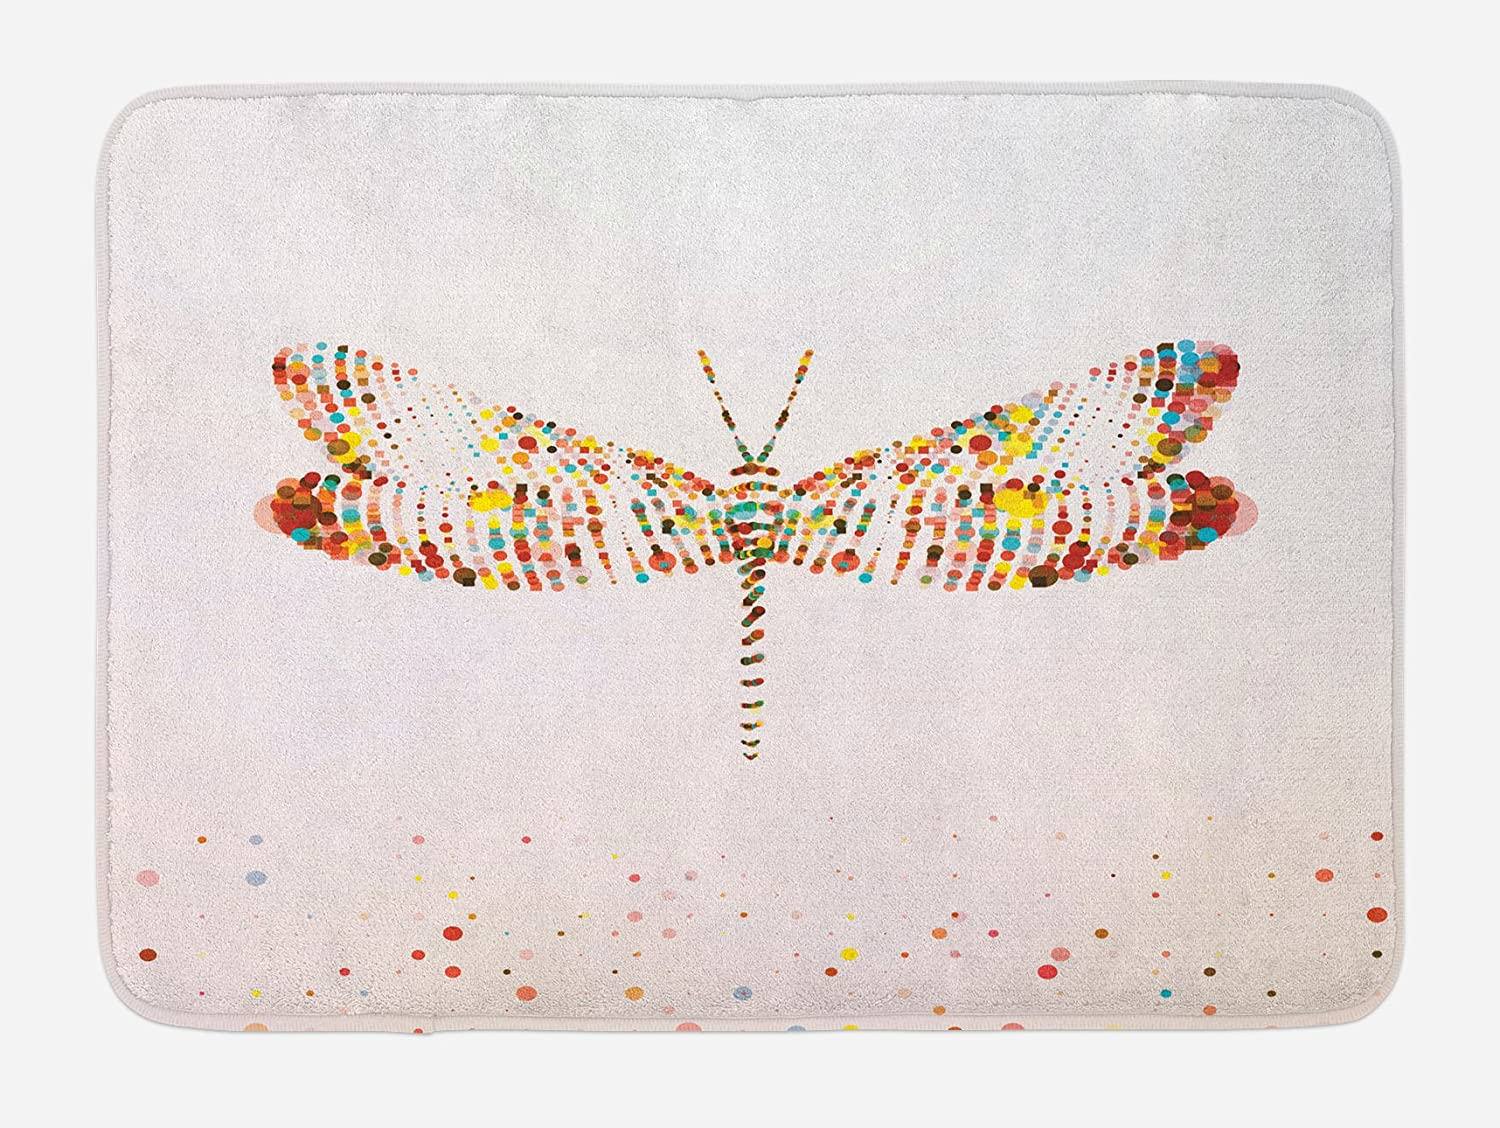 Ambesonne Dragonfly Bath Mat, Majestic Dragonfly Shape with Colorful Tiny Dot Effects Imaginary Modern Design, Plush Bathroom Decor Mat with Non Slip Backing, 29.5